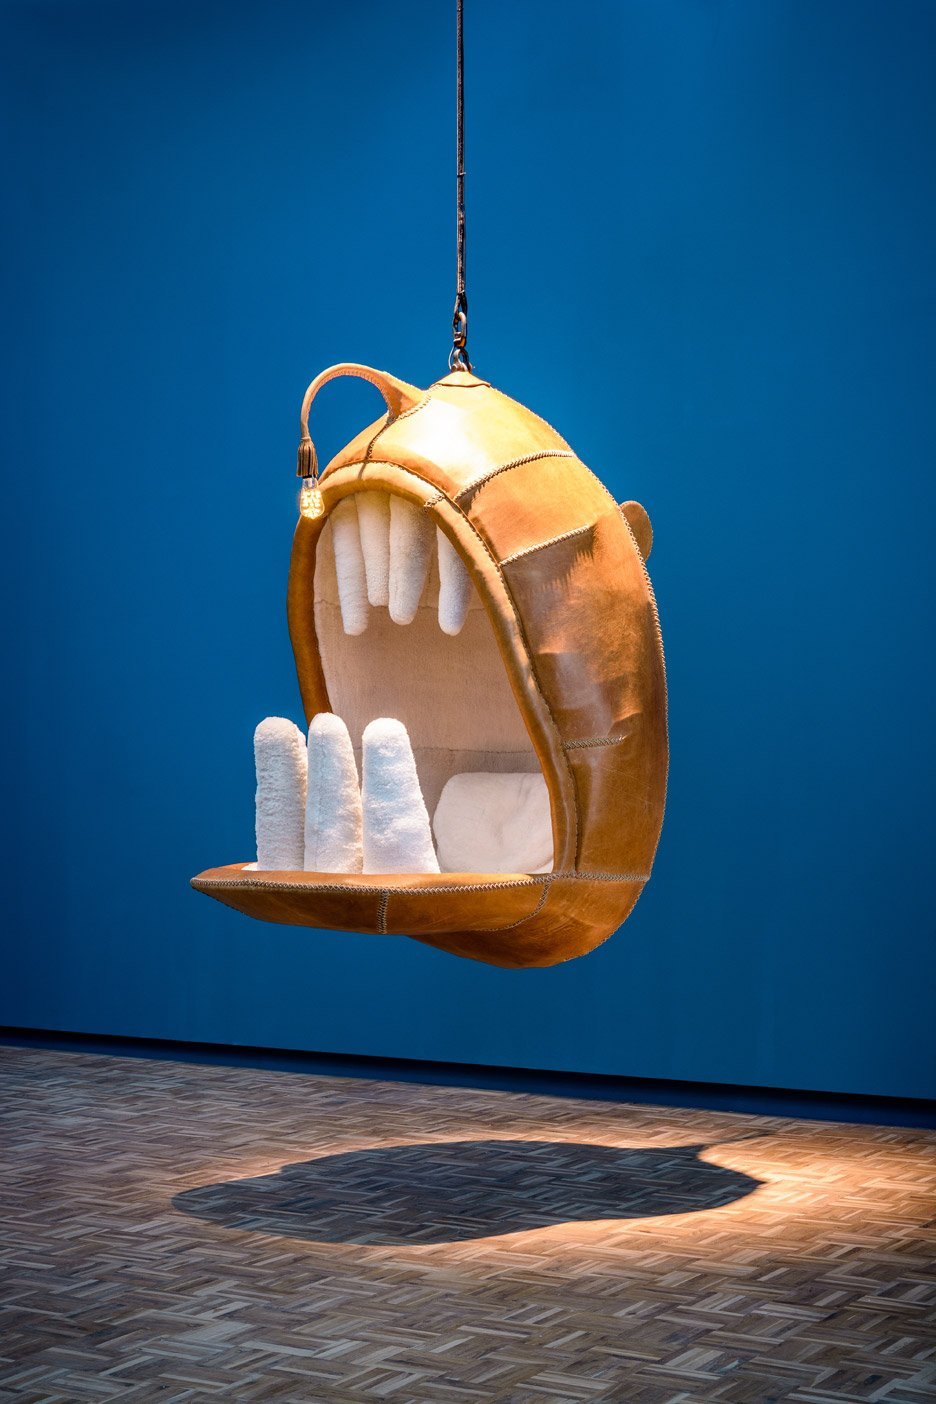 Porky Hefers Fiona Blackfish Is A Killerwhaleshaped Chair - Anglerfish chair with a big lamp